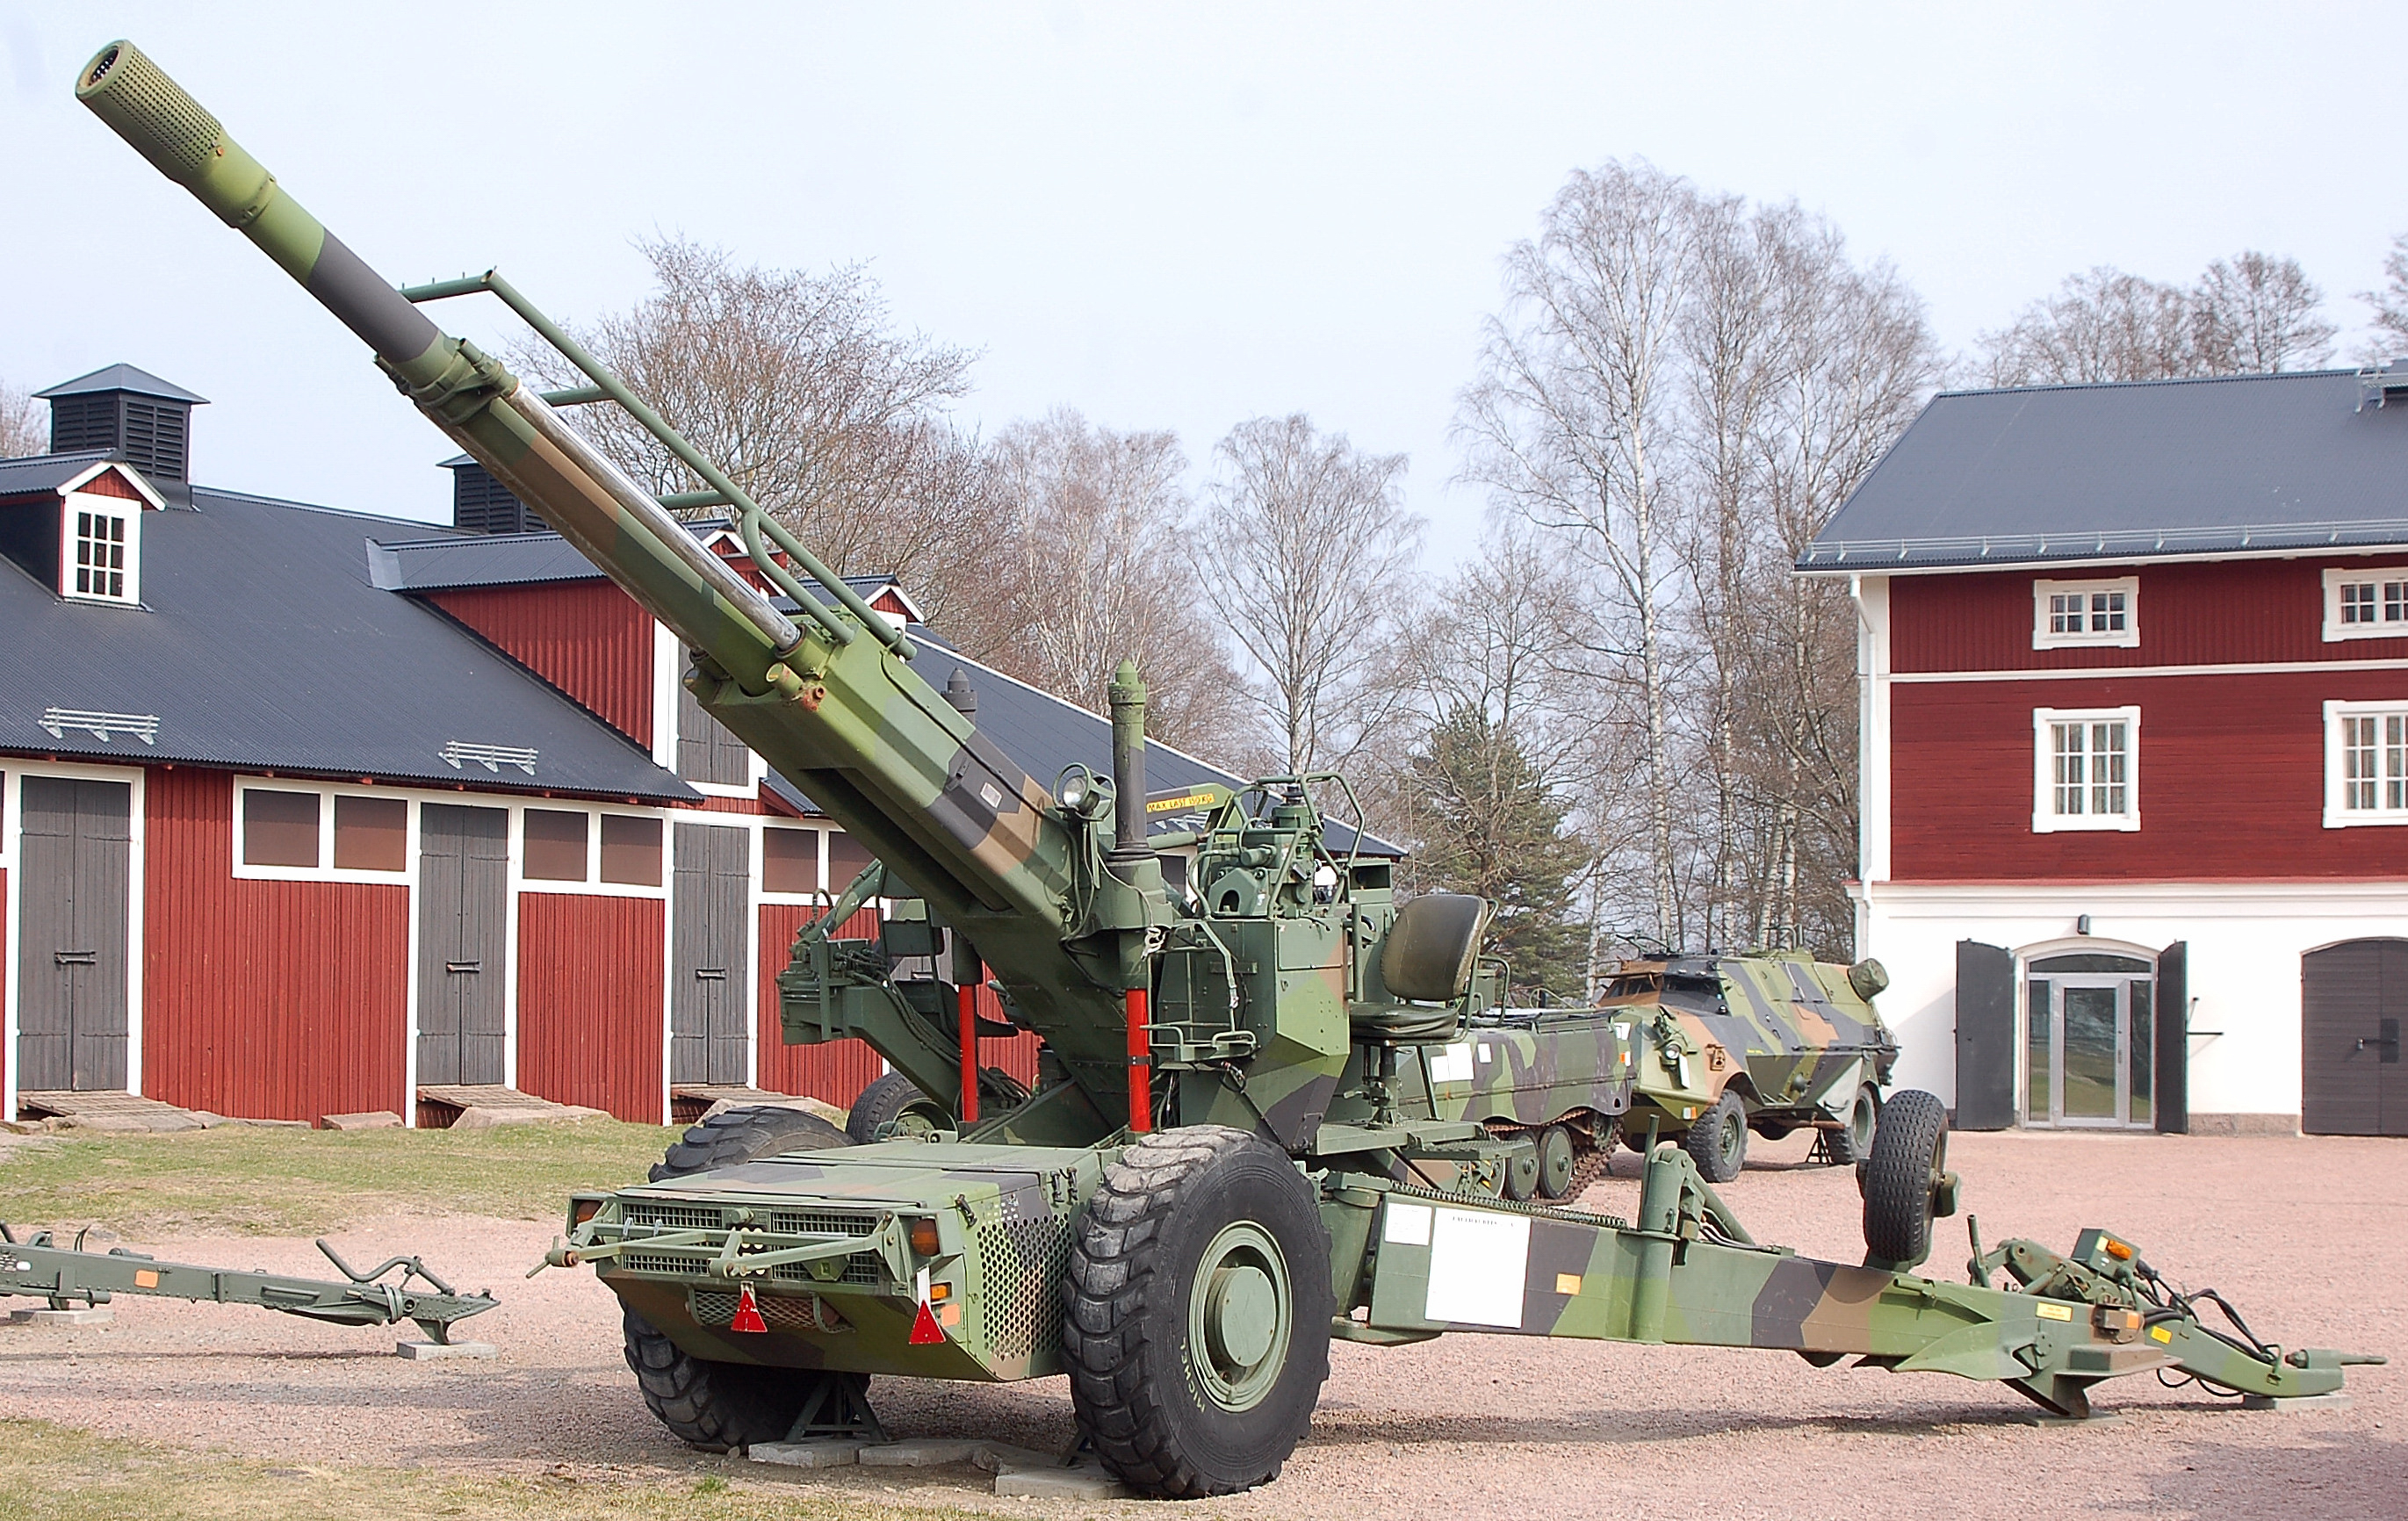 This is the latest BAE System's M777A2 Ultra Light Towed-Howitzer; equivalent of the Bofors FH77B. The M777A2 is manufactured by BAE in the United States now. It is an ULTRA-LIGHT towed howitzer of the same caliber; that can be airdropped for Airborne missions. India wants to buy 200 of these ultra-light howitzers from the United States immediately, for the Army Mountain-Divisions